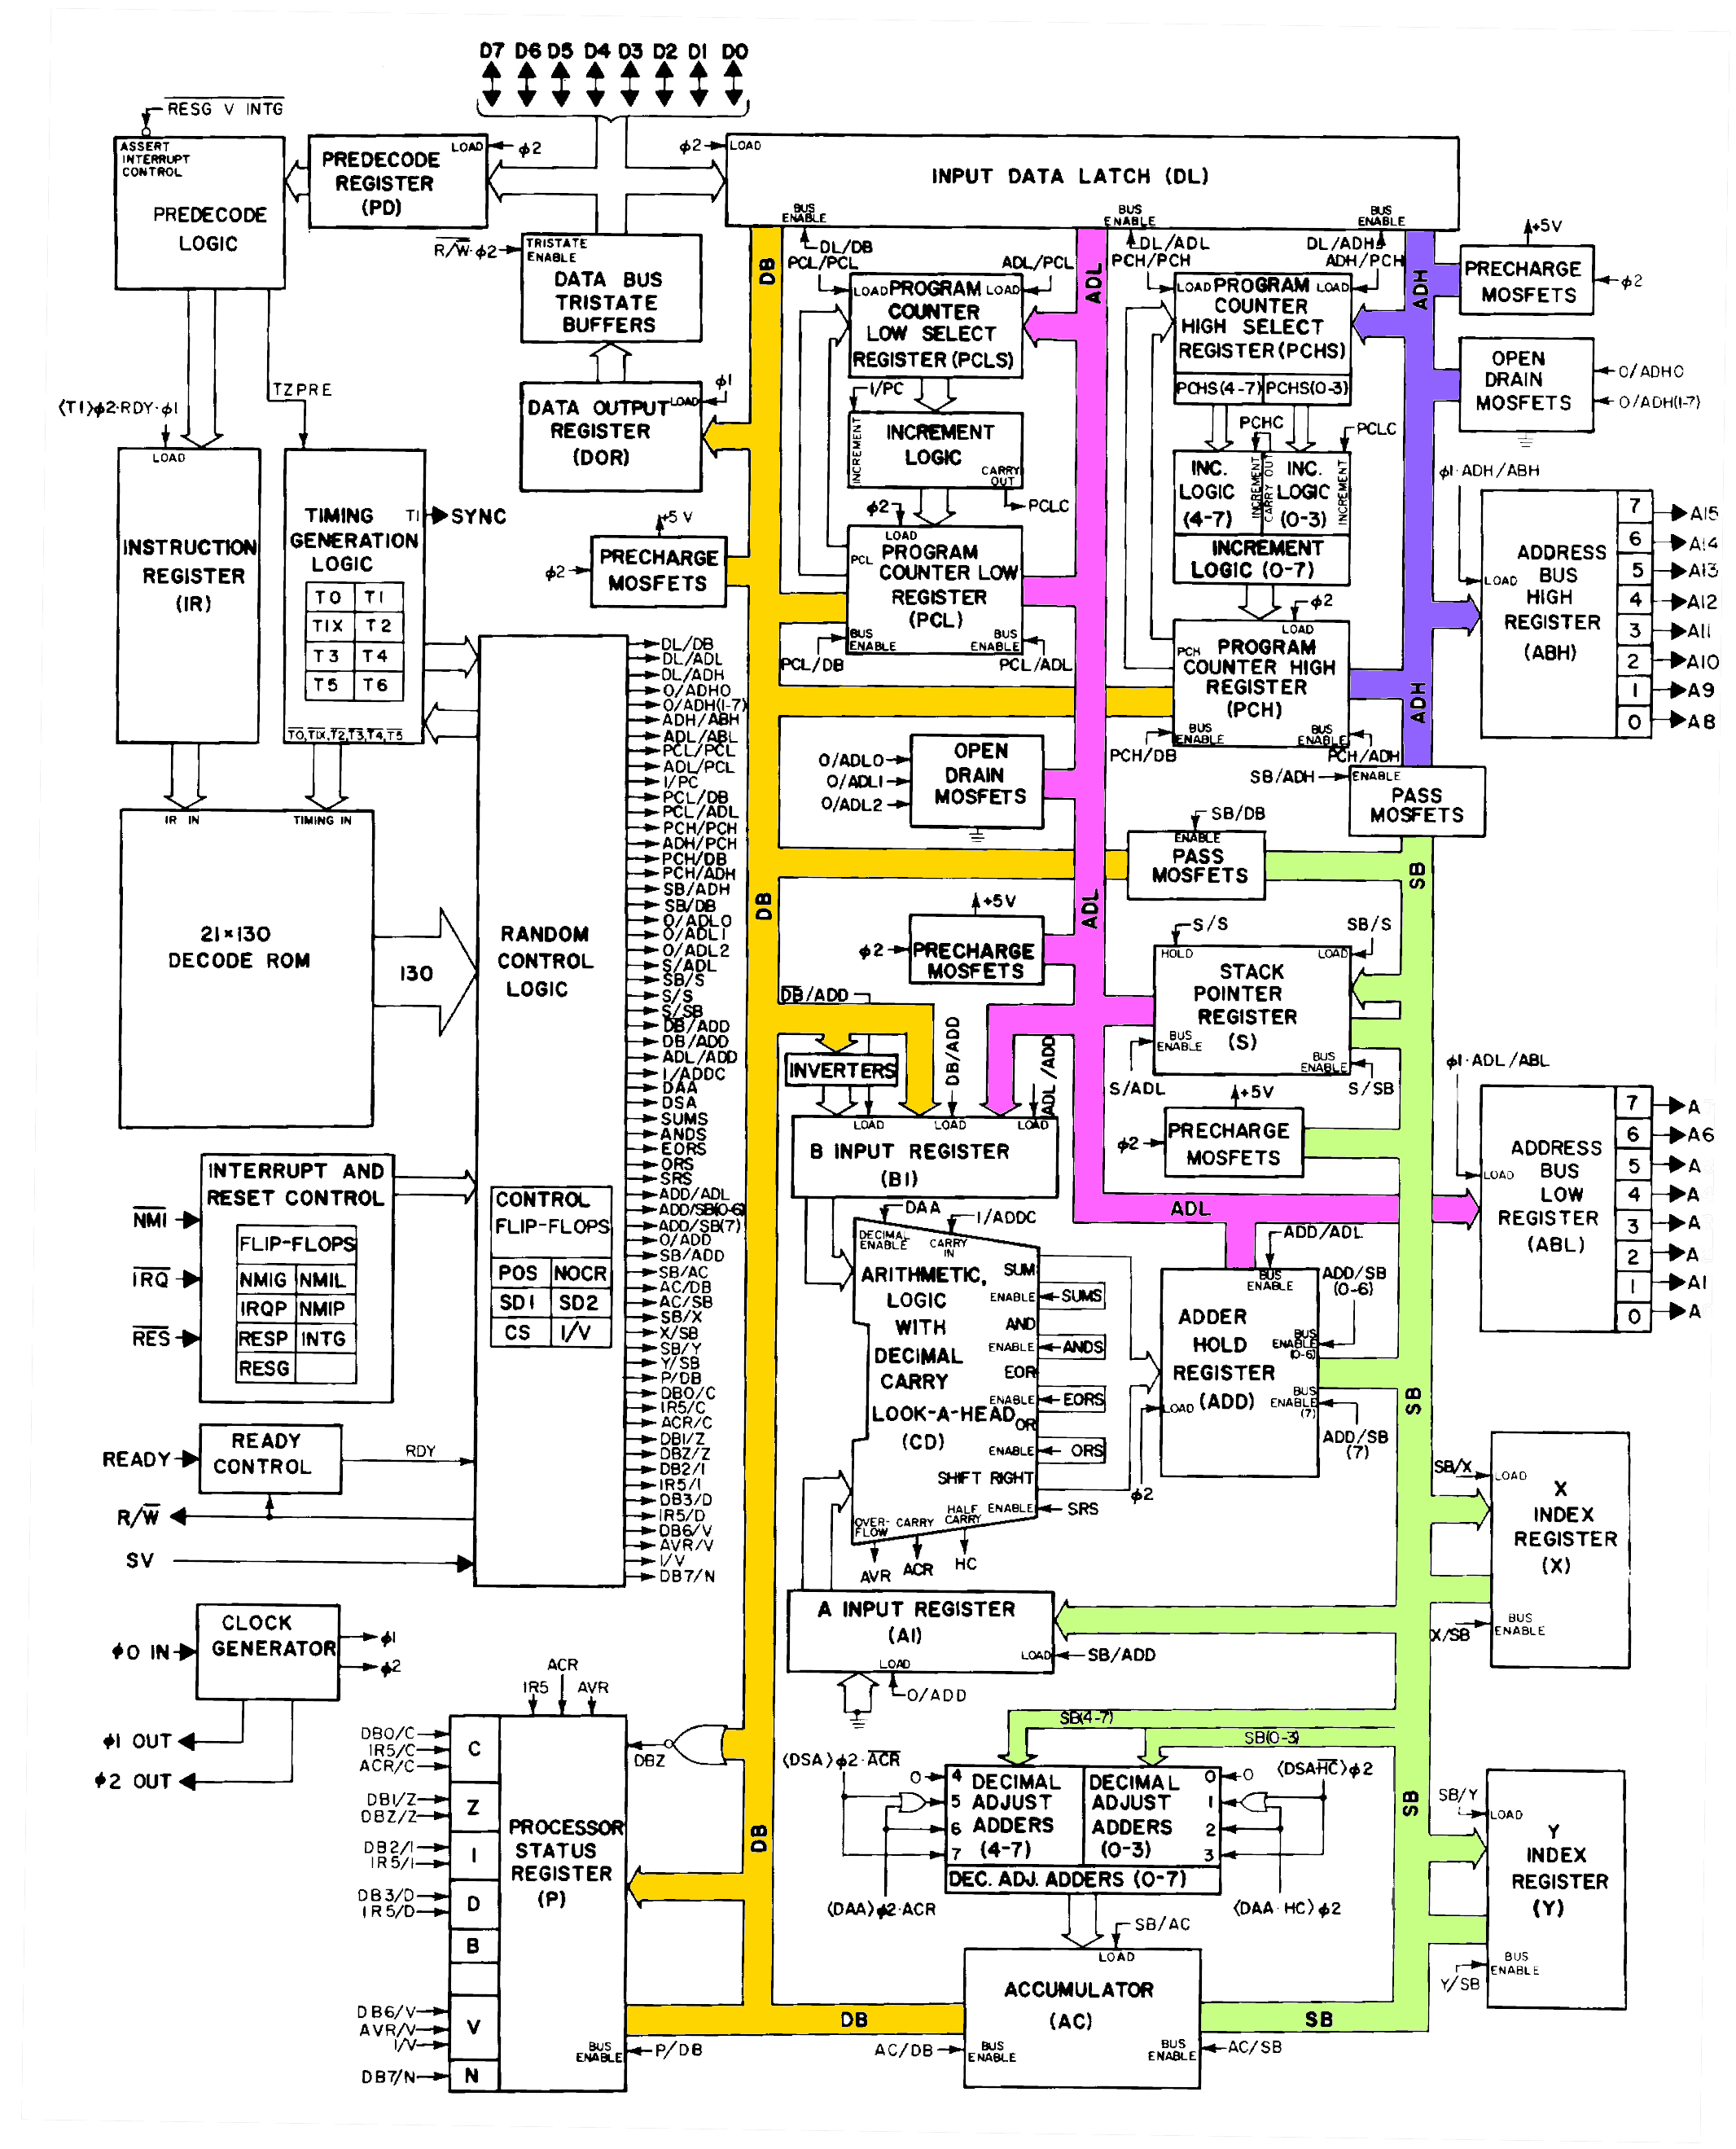 6502 diagram db sb ad 600 229 computer systems fundamentals